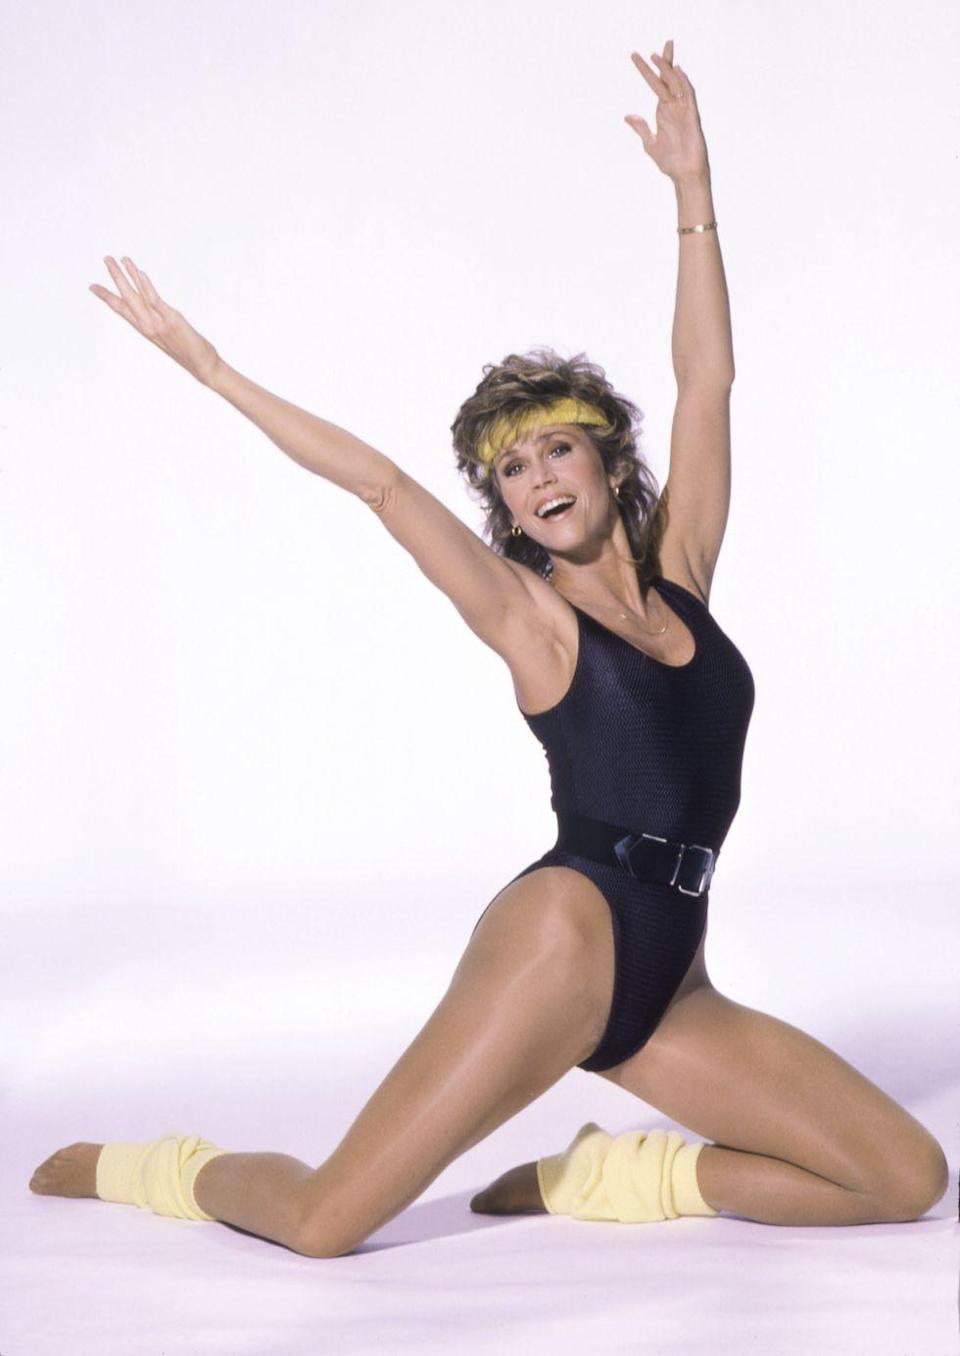 <p>Jane Fonda's revolutionary workout tapes helped popularize the gym look of the era: bodysuits, leg warmers, and sweatbands. </p>